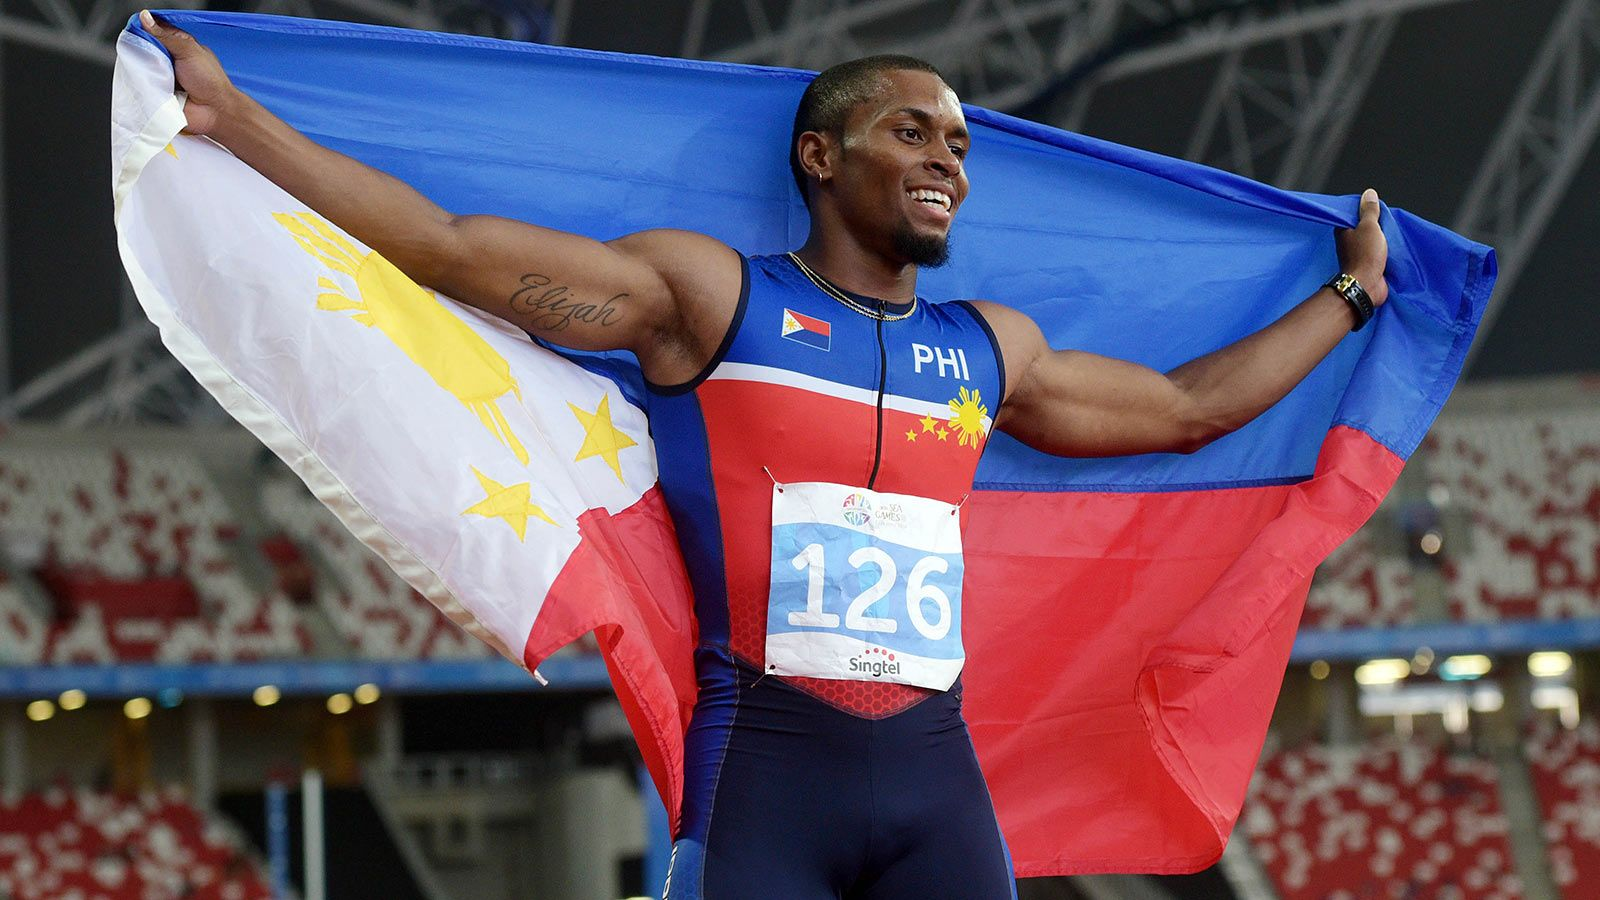 Eric Cray and track team, Splash Brothers, and other highlights, lowlights for Philippines in 2015 SEA Games